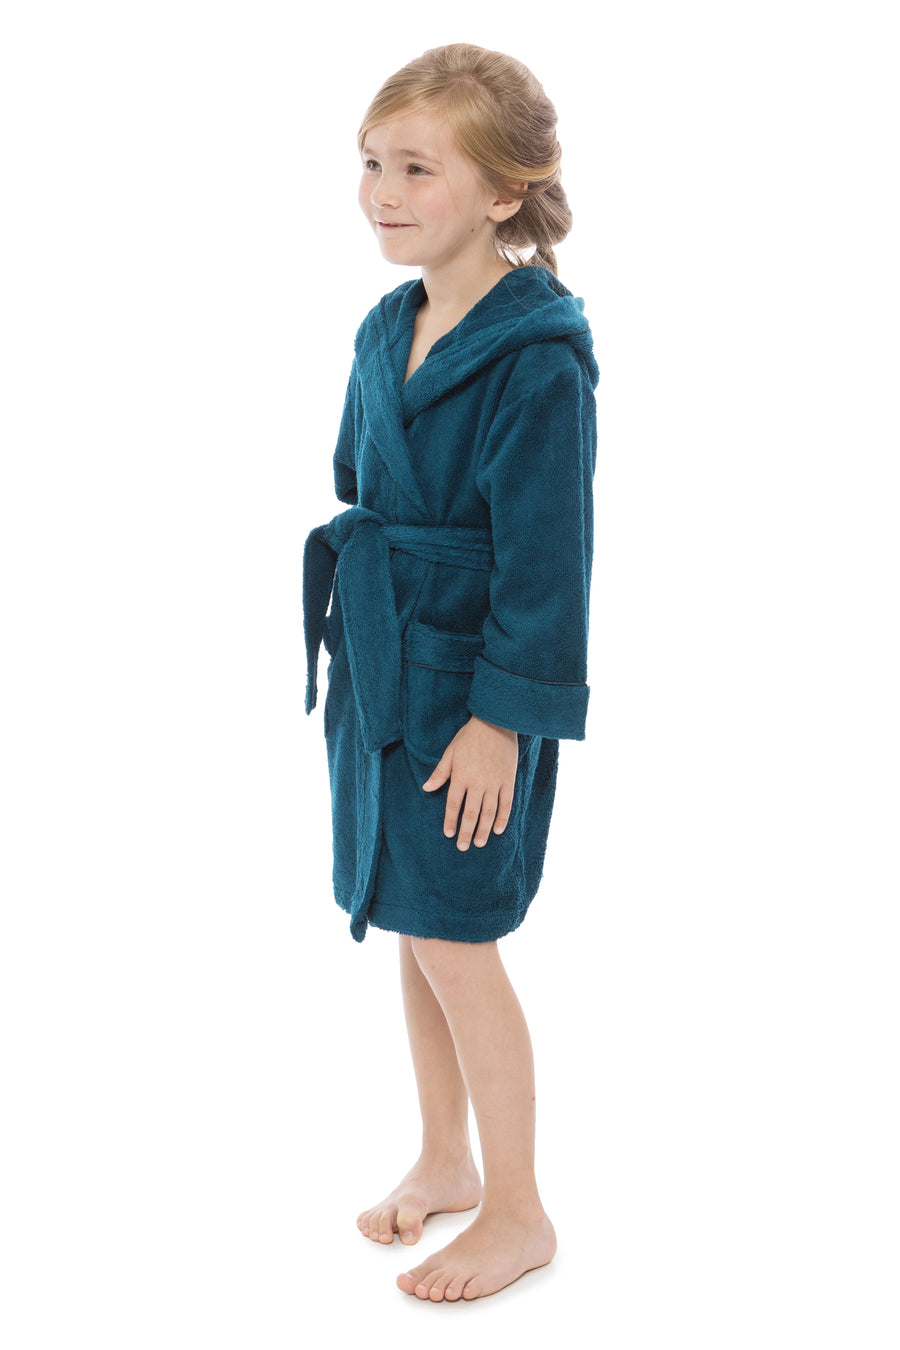 Rub-A-Dub - Kids Bamboo Viscose Terry Bath Robe - TexereSilk